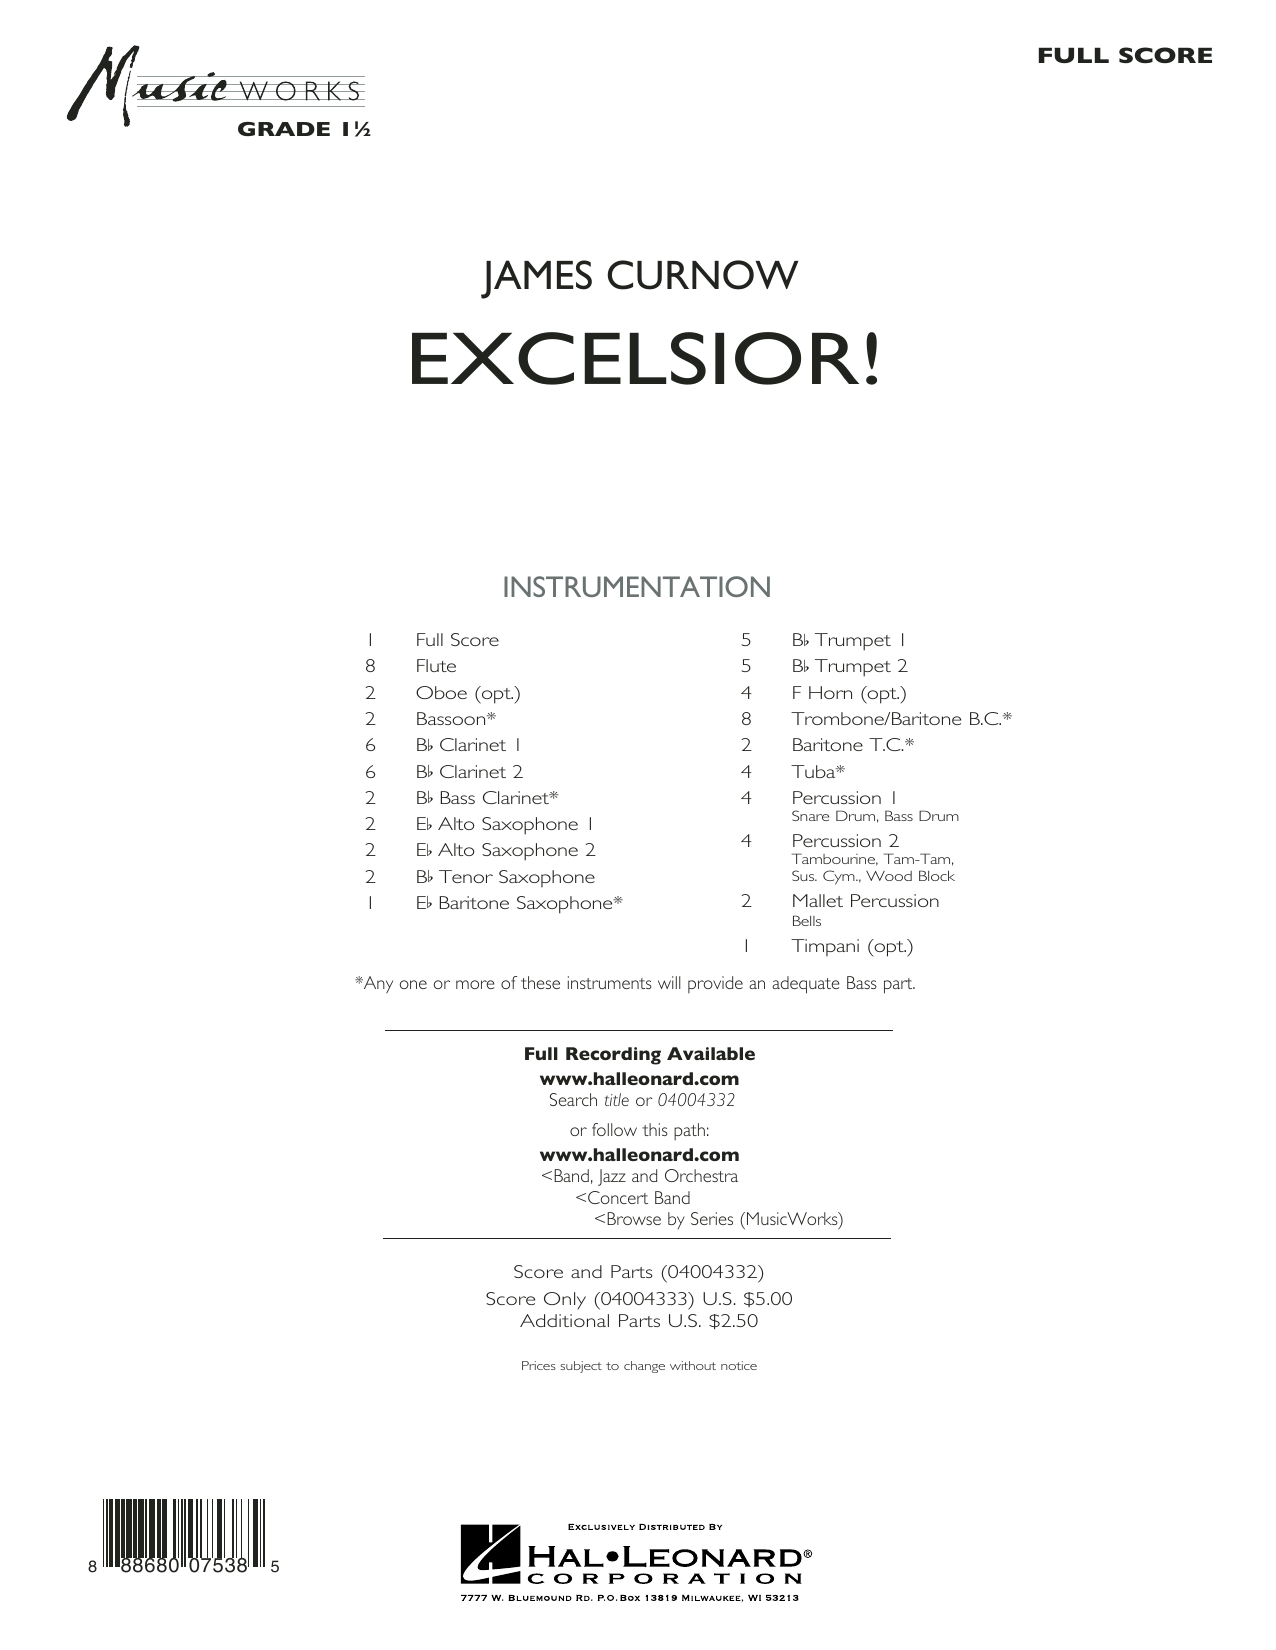 Excelsior! (COMPLETE) sheet music for concert band by James Curnow